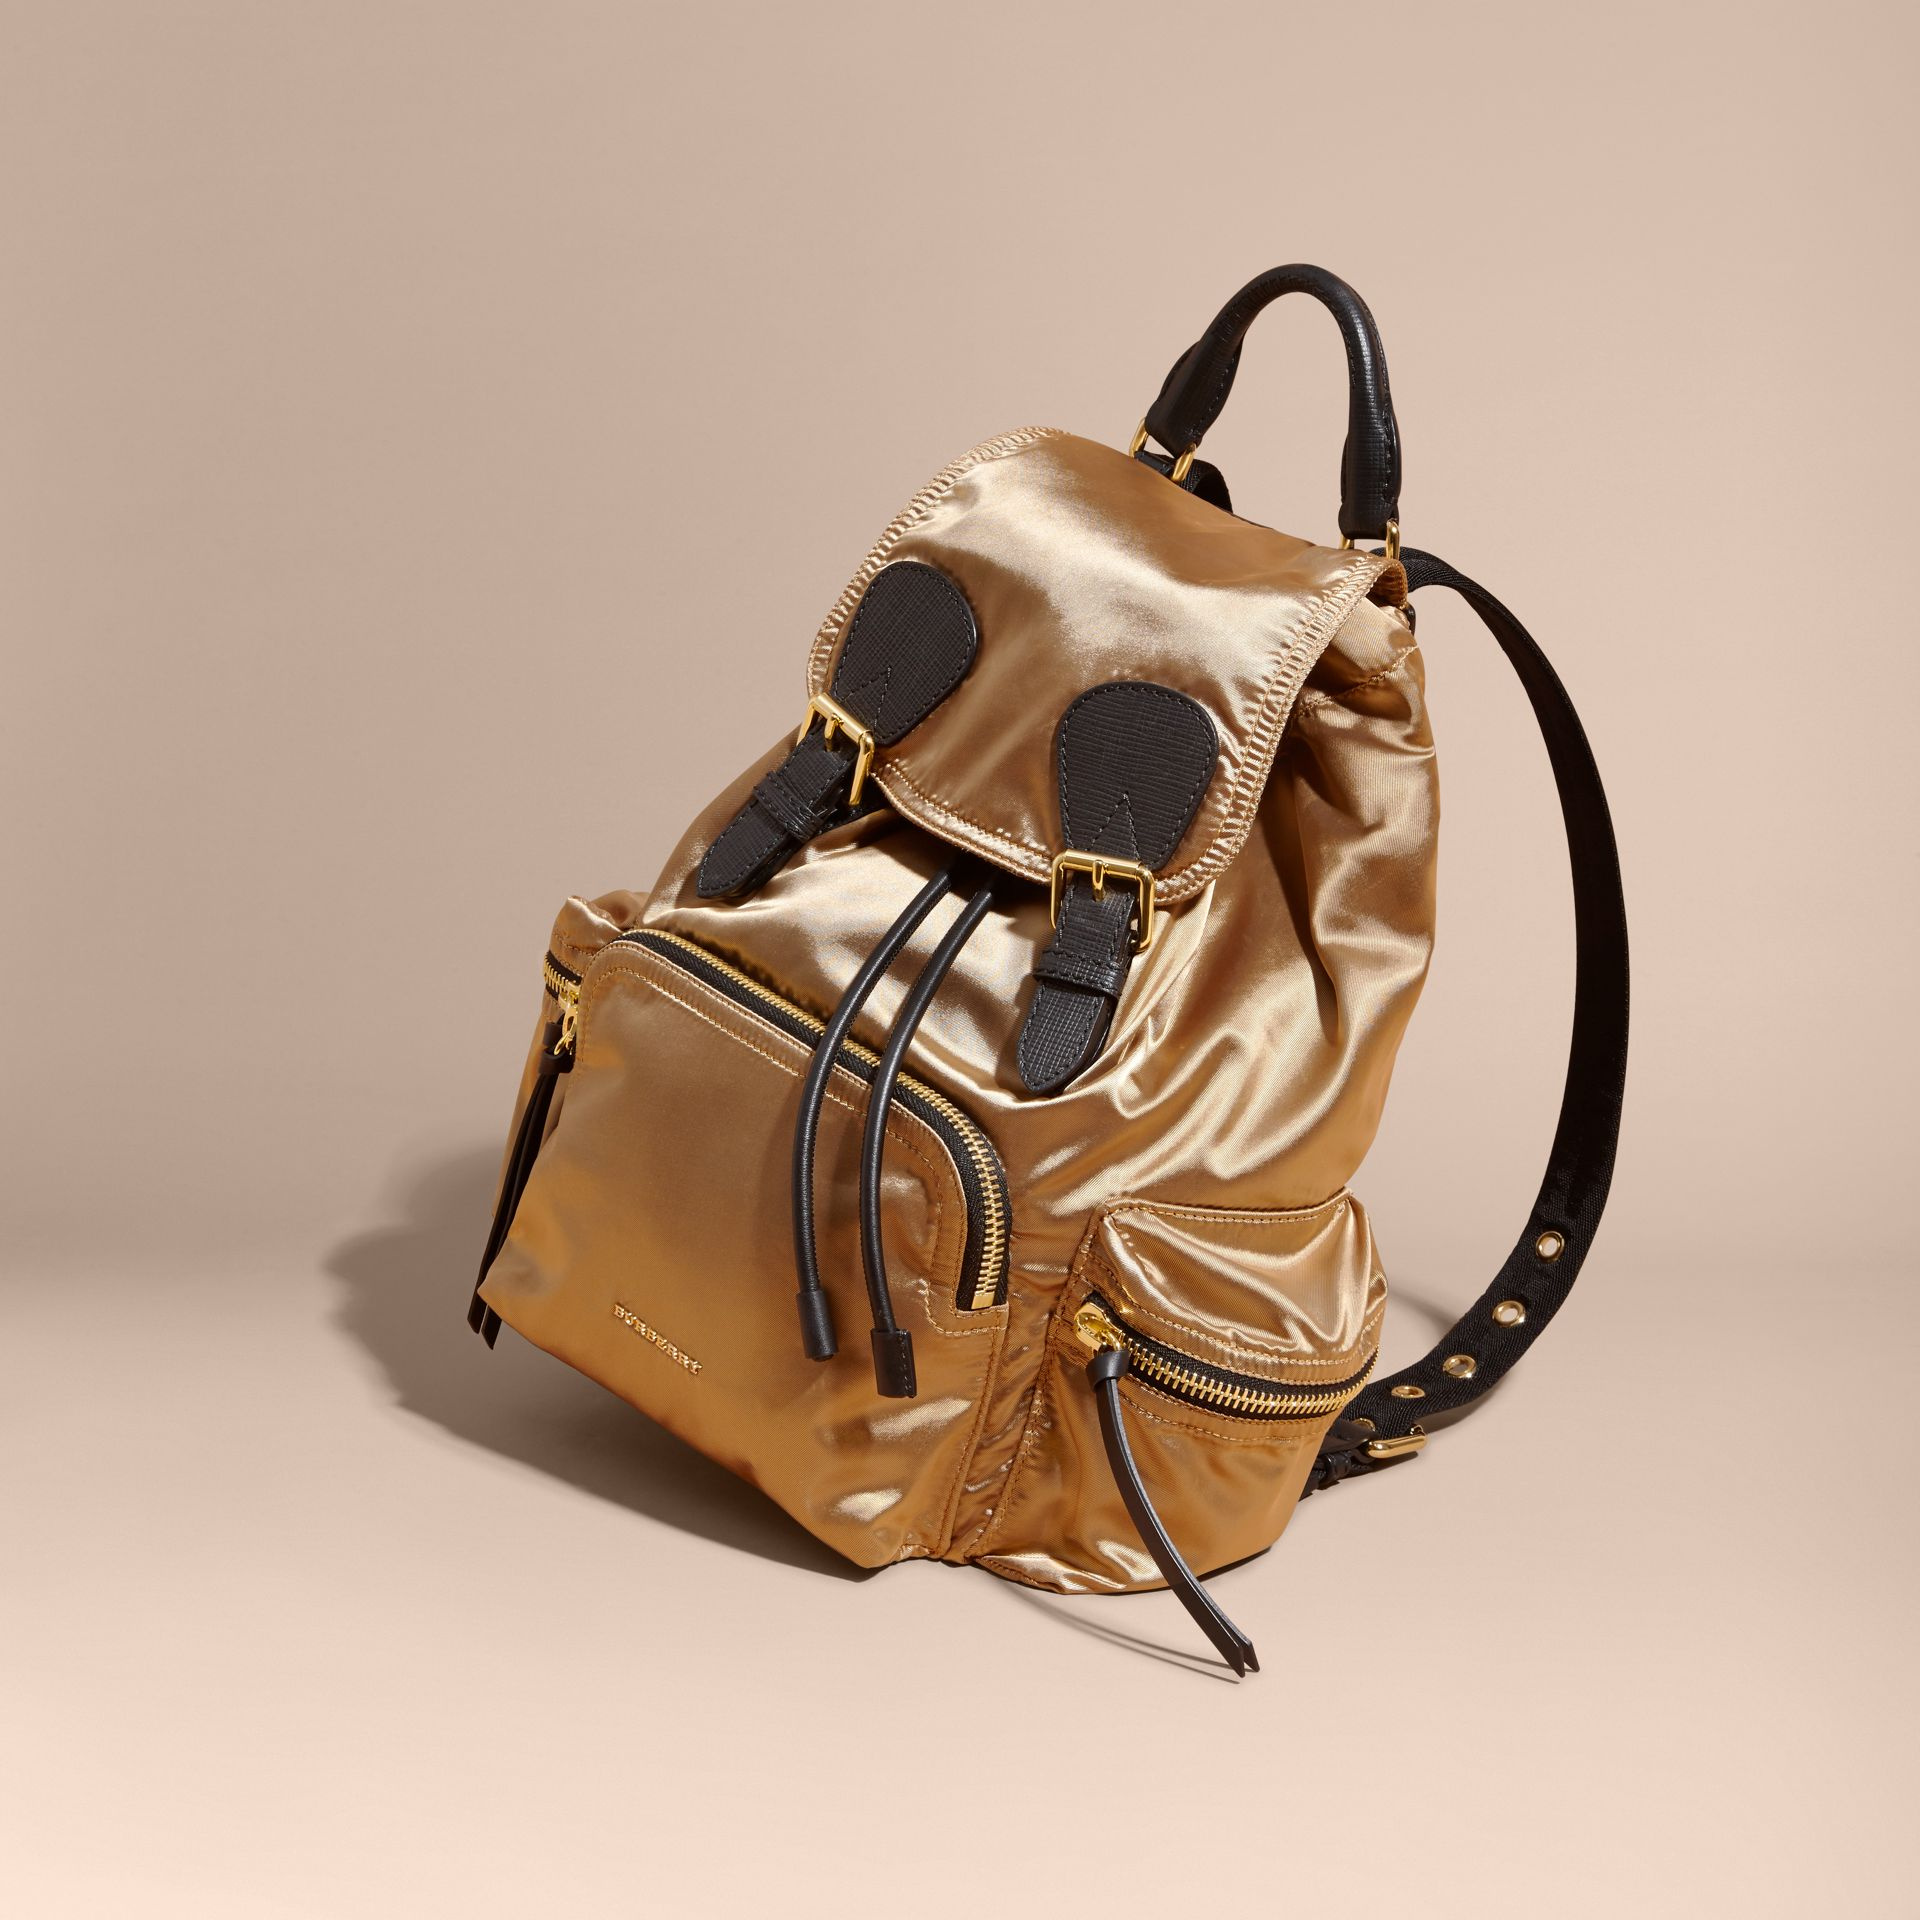 Gold/black The Medium Rucksack in Two-tone Nylon and Leather Gold/black - gallery image 7